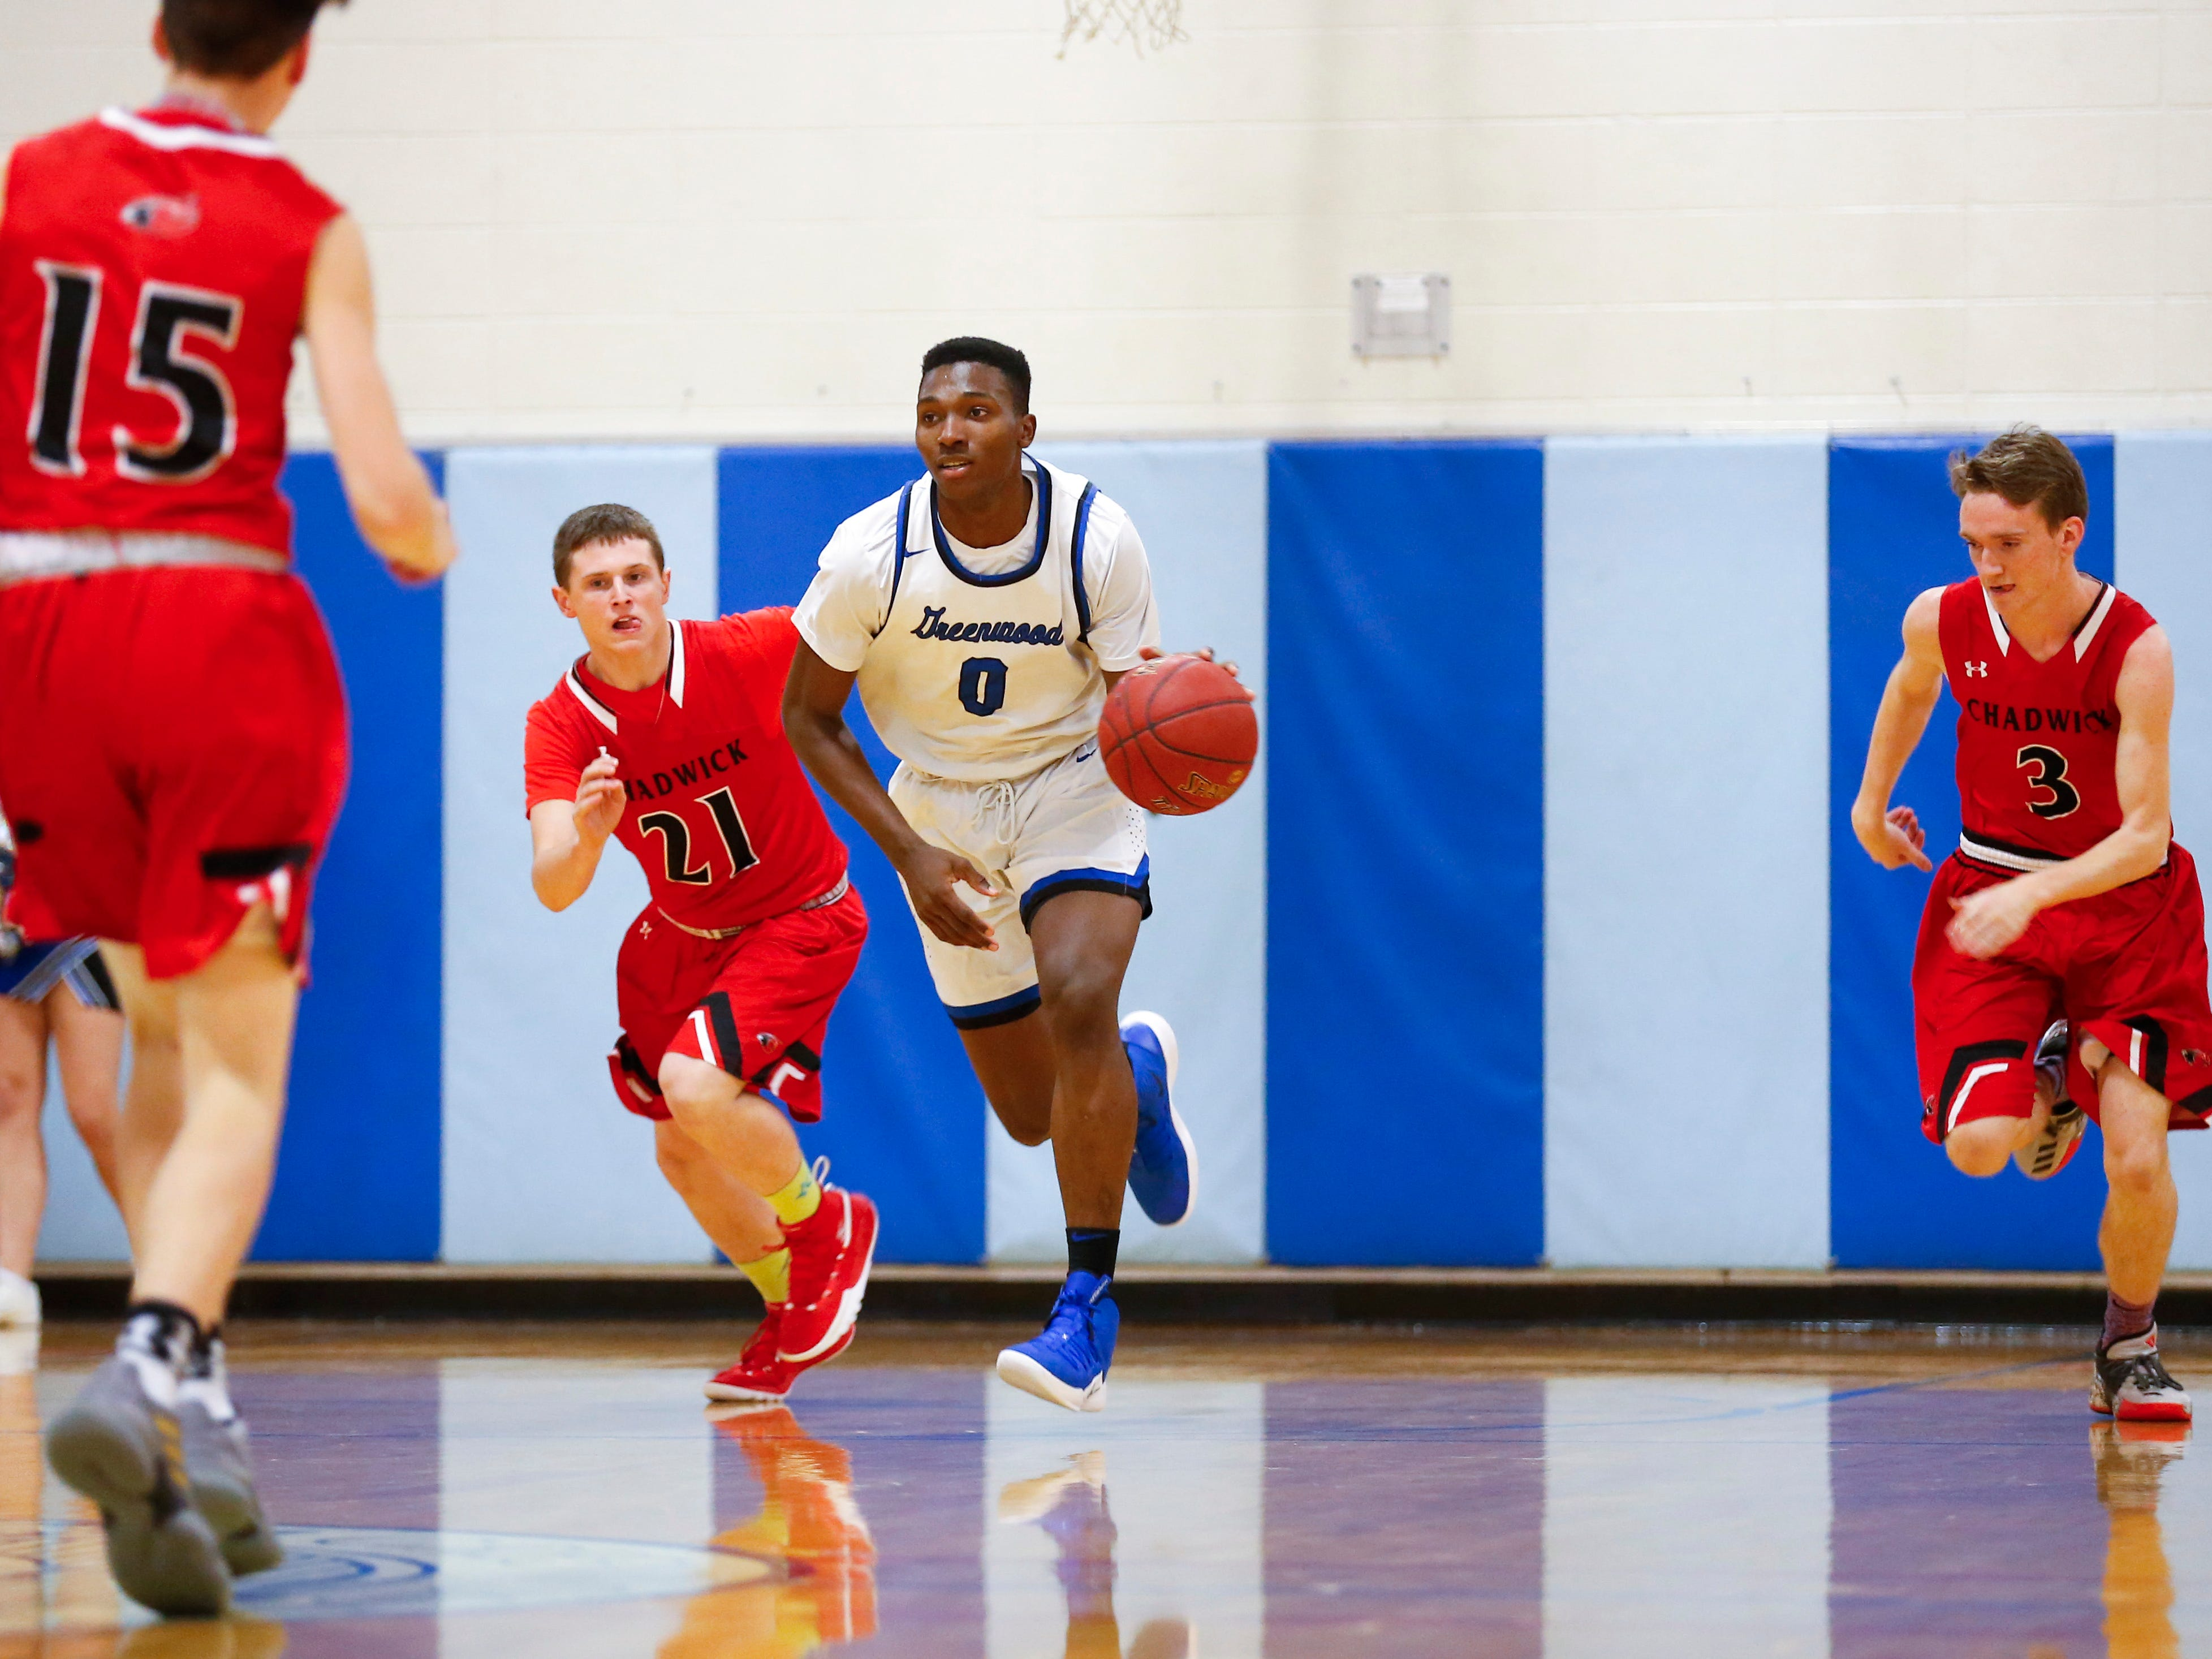 VOTE: Who was the best high school basketball player of Week 2?